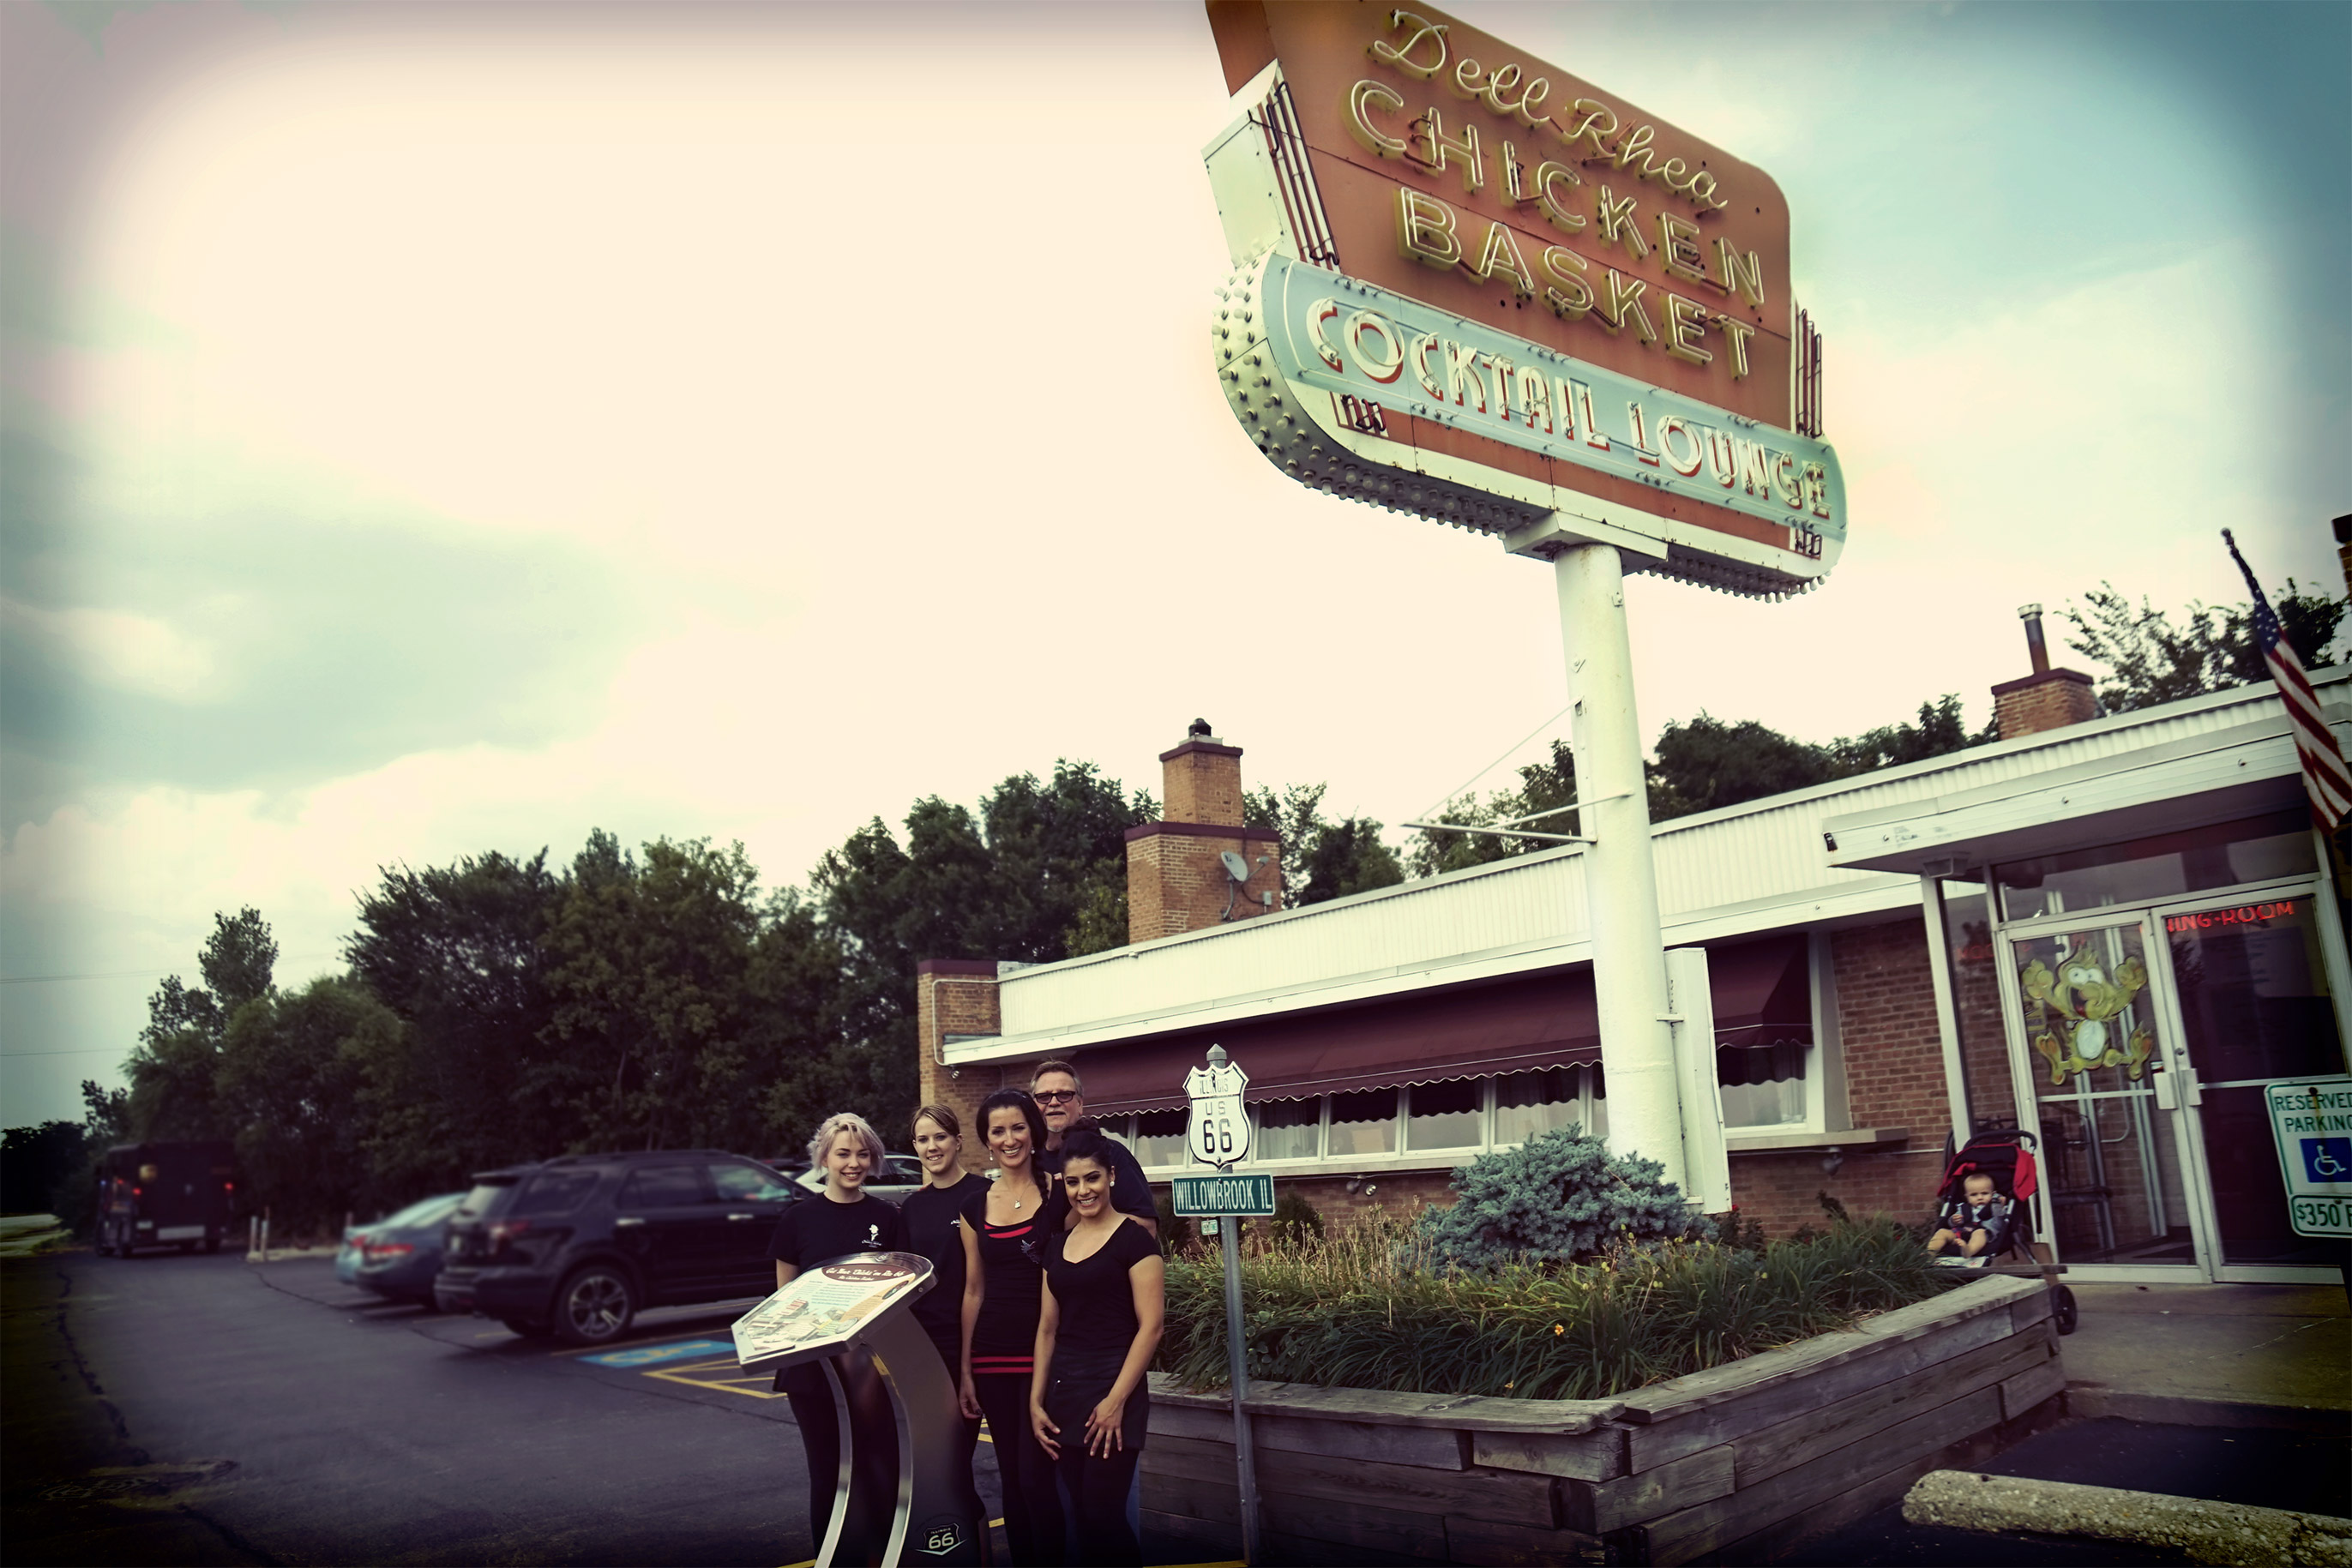 Road tripping down Route 66 Day 1: Dell Raye Chicken Basket